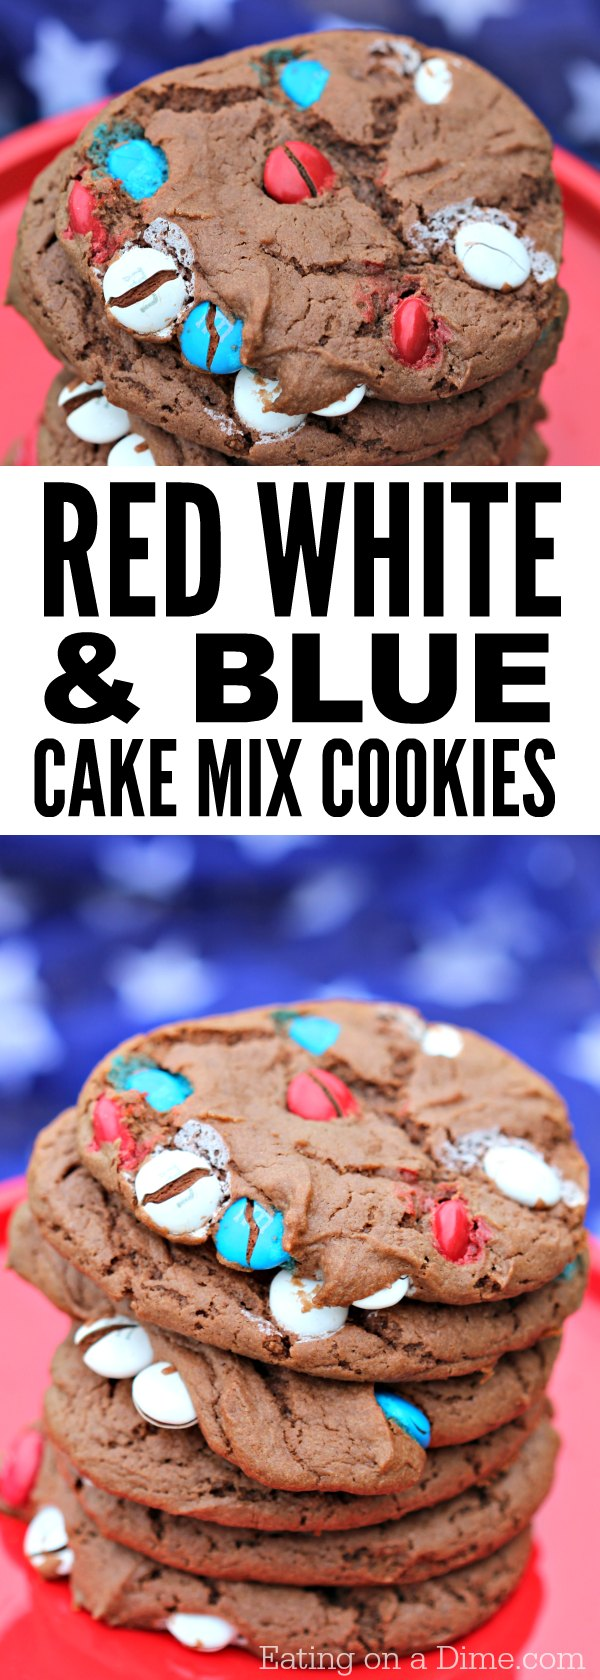 You only need 5 ingredients to make this delicious 4th of July Cake mix Cookies Recipe. These cake mix cookies are the best 4th of July desserts.